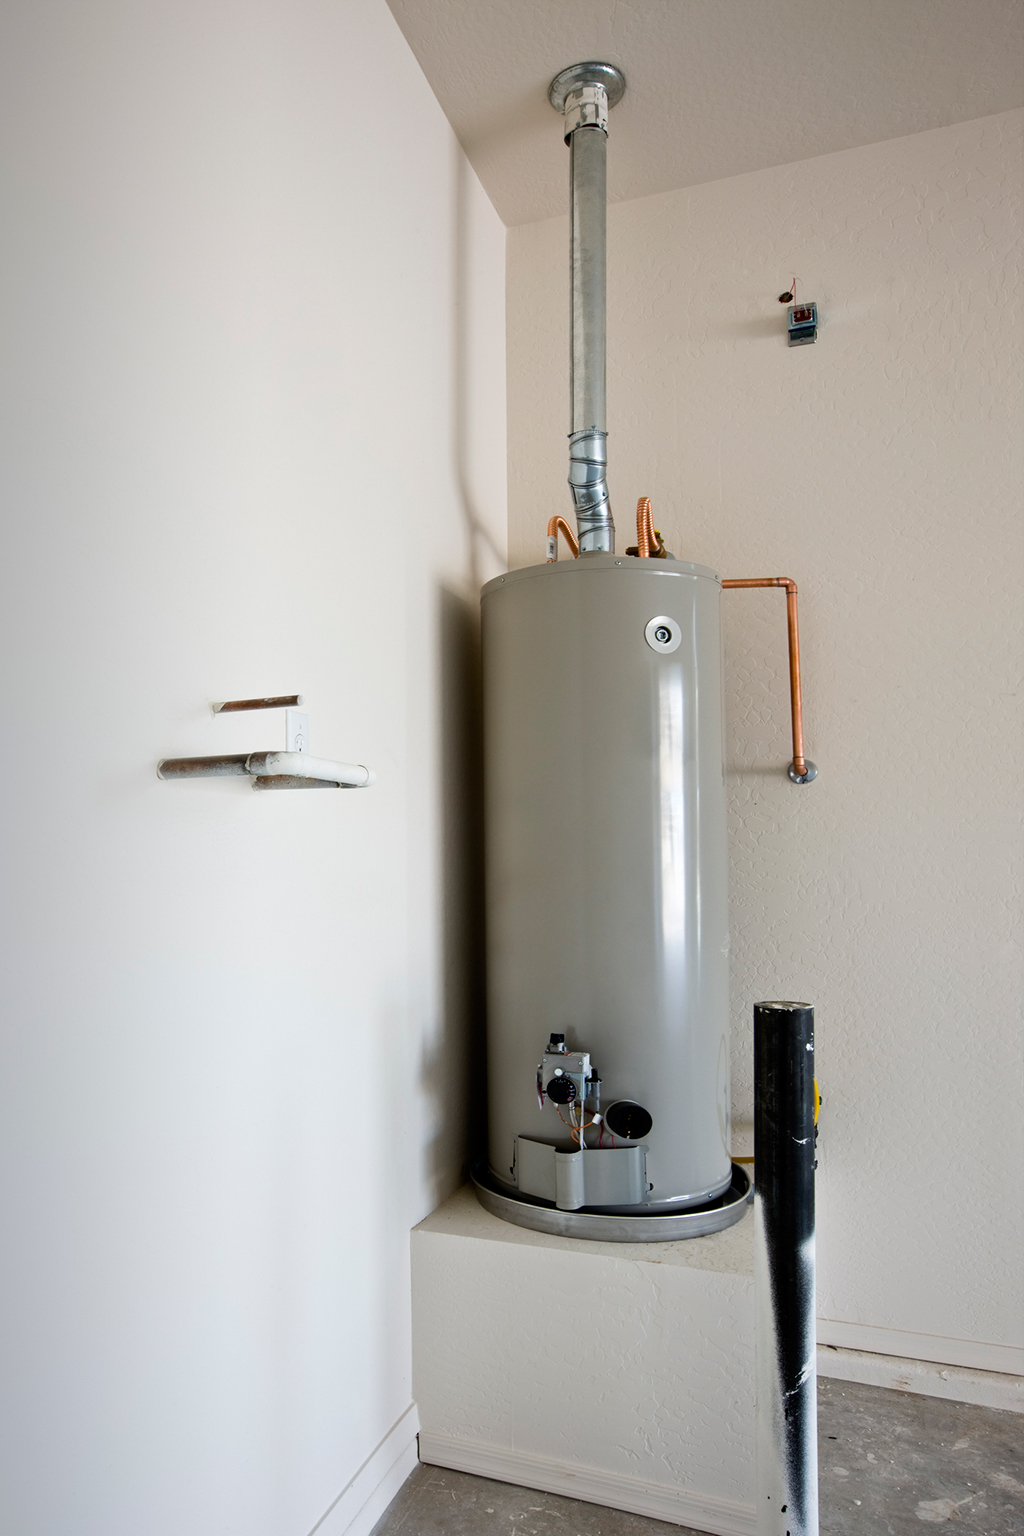 5-Signs-That-It-Is-Time-To-Call-A-Professional-In-Water-Heater-Repair-_-Chattanooga,-TN